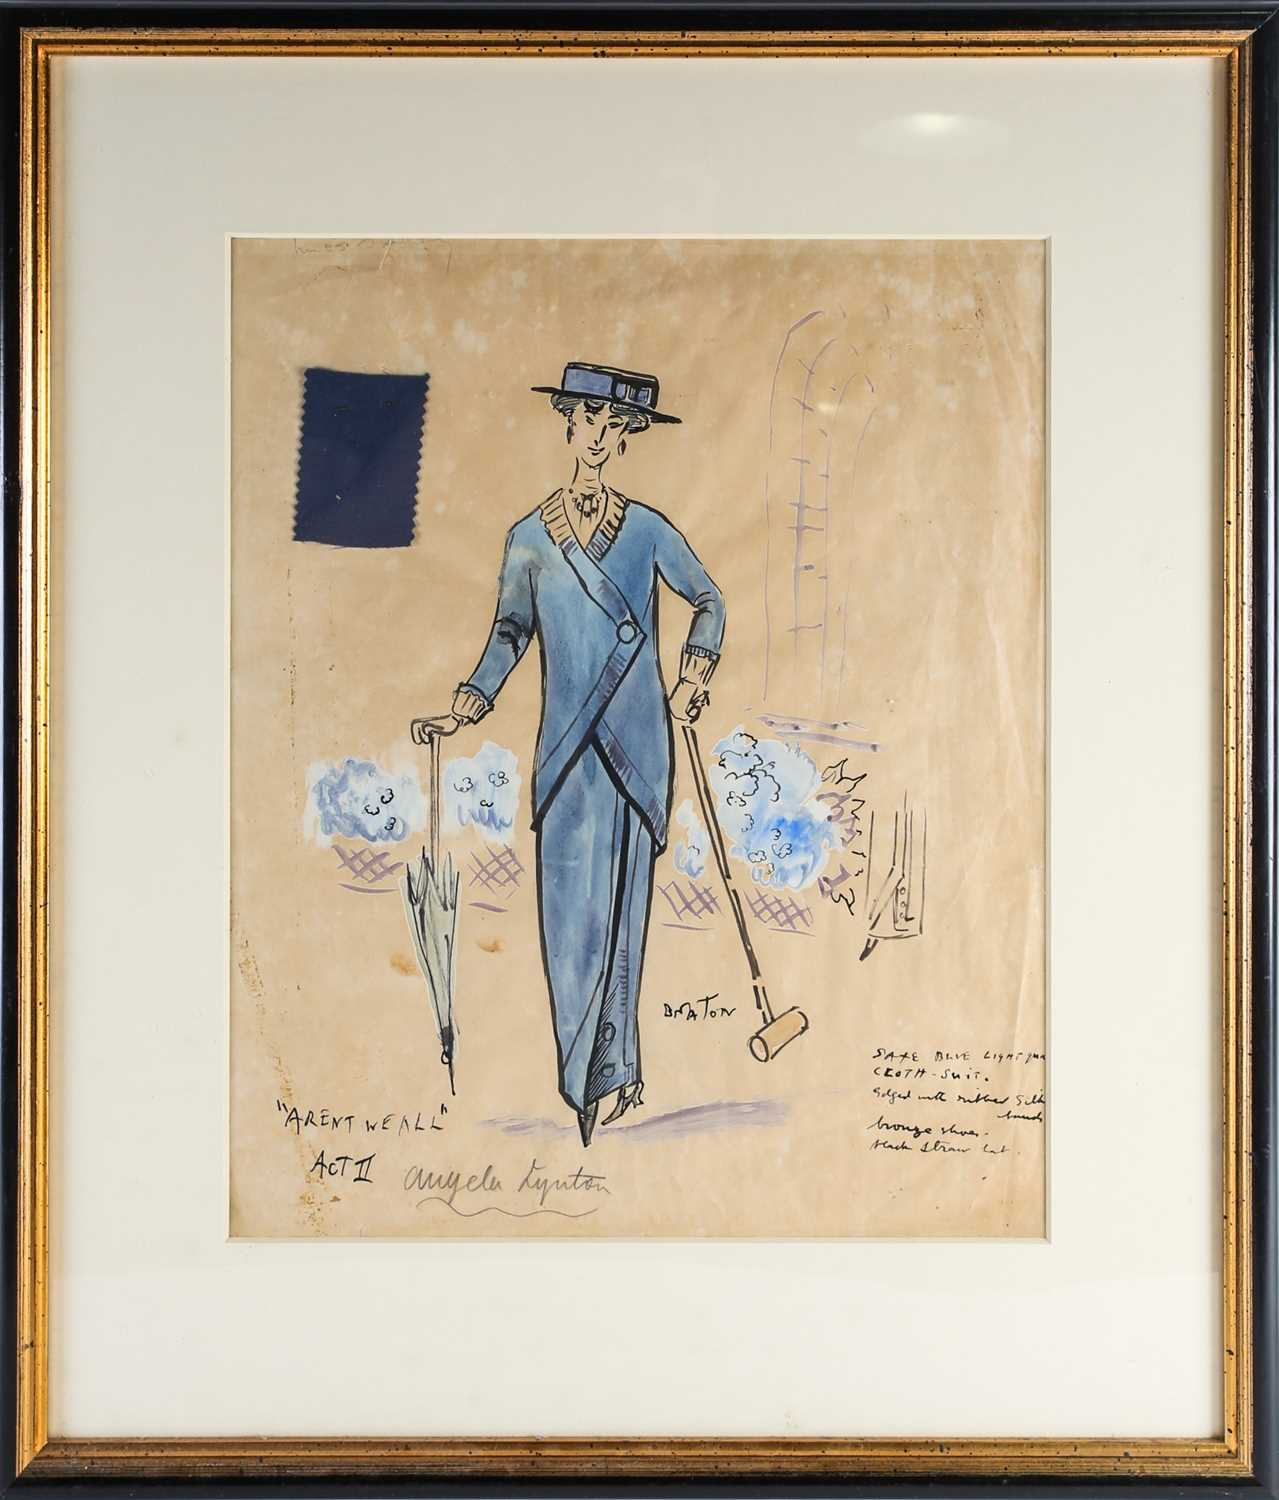 Cecil Beaton theatrical costume design